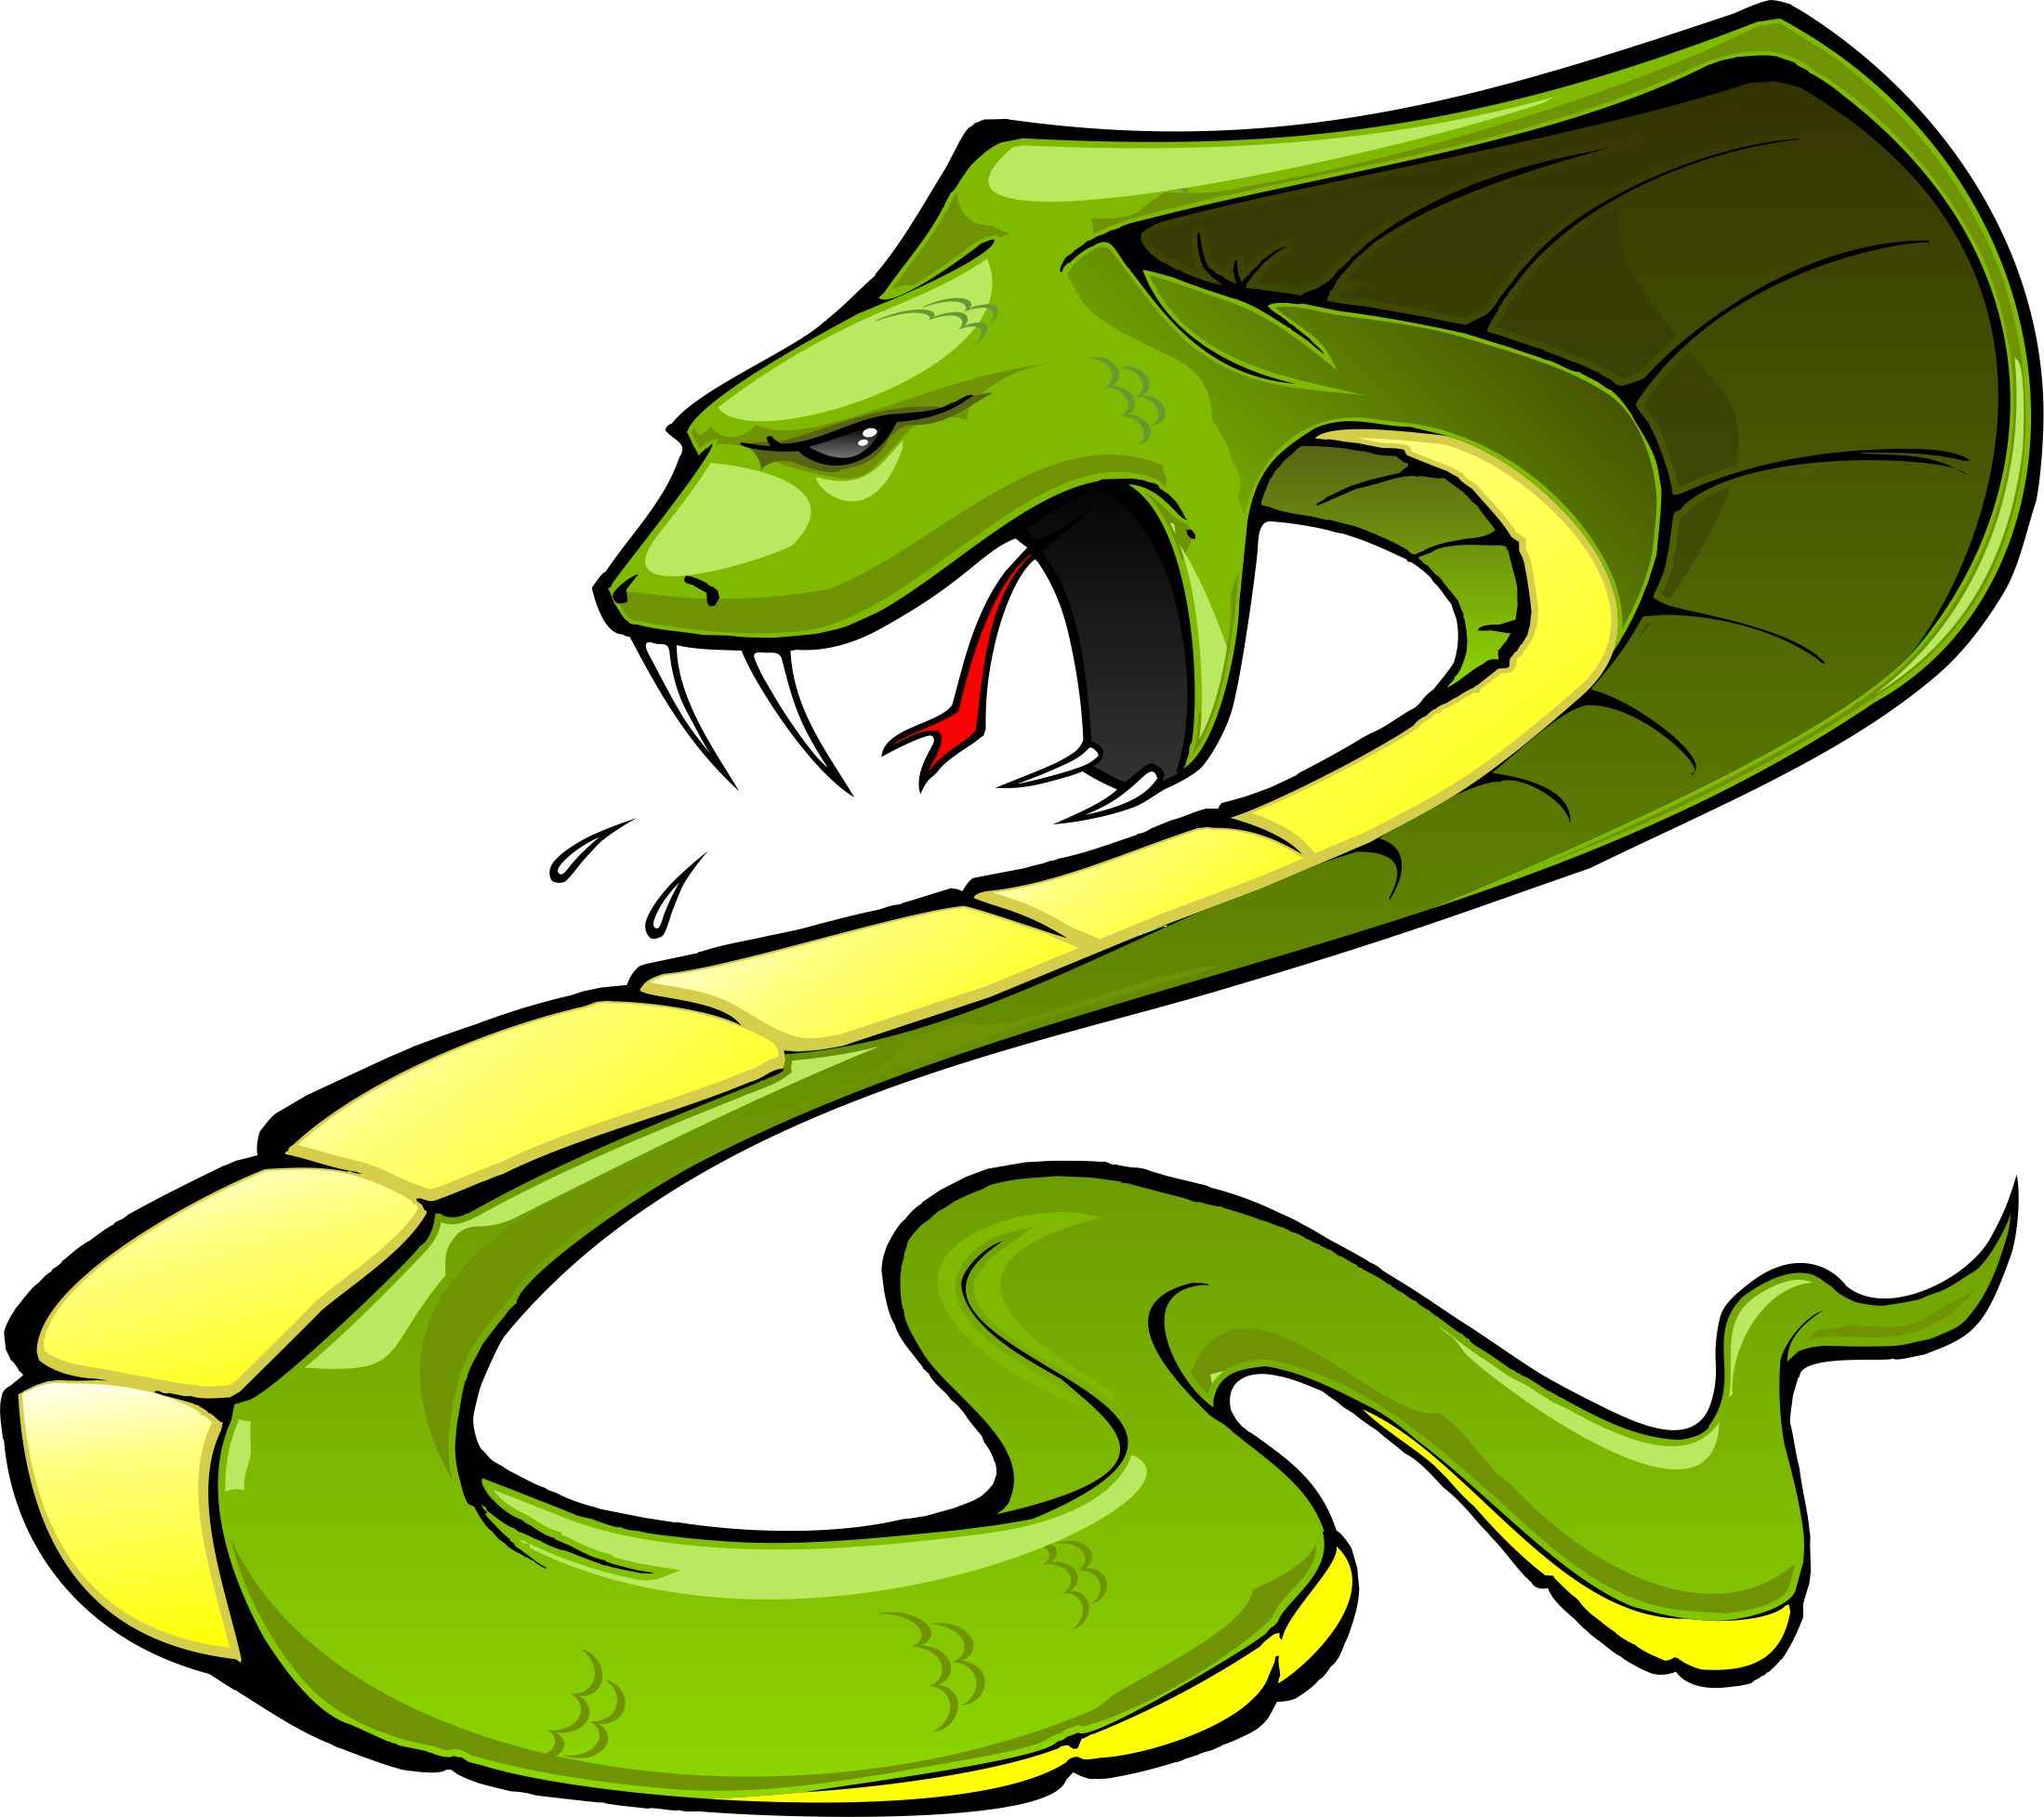 Viper Clip Art - Cliparts.co